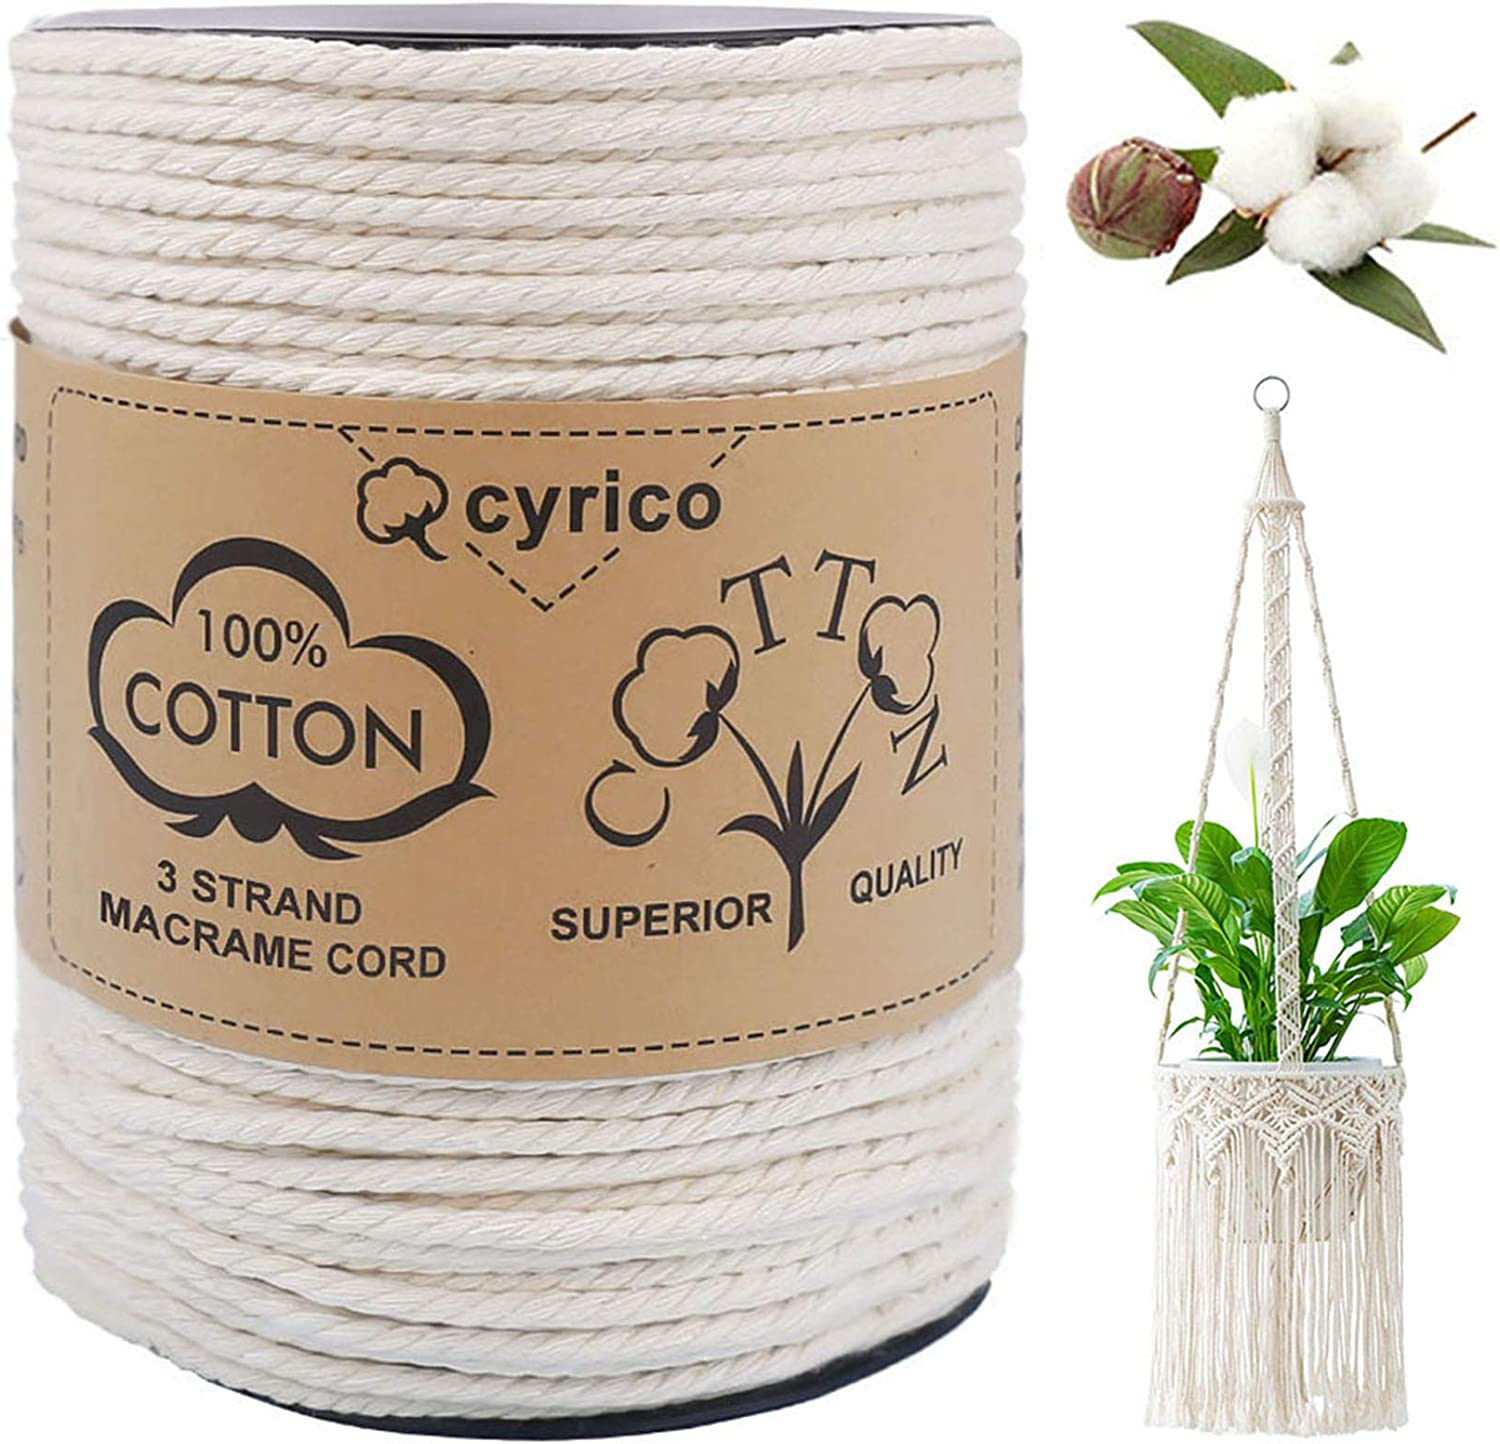 Craft Cotton Cord Twisted Macrame Cord Macrame Rope Light Gray Macrame Cotton Cord 4 mm 150 Meters Twisted  Macrame Cotton String